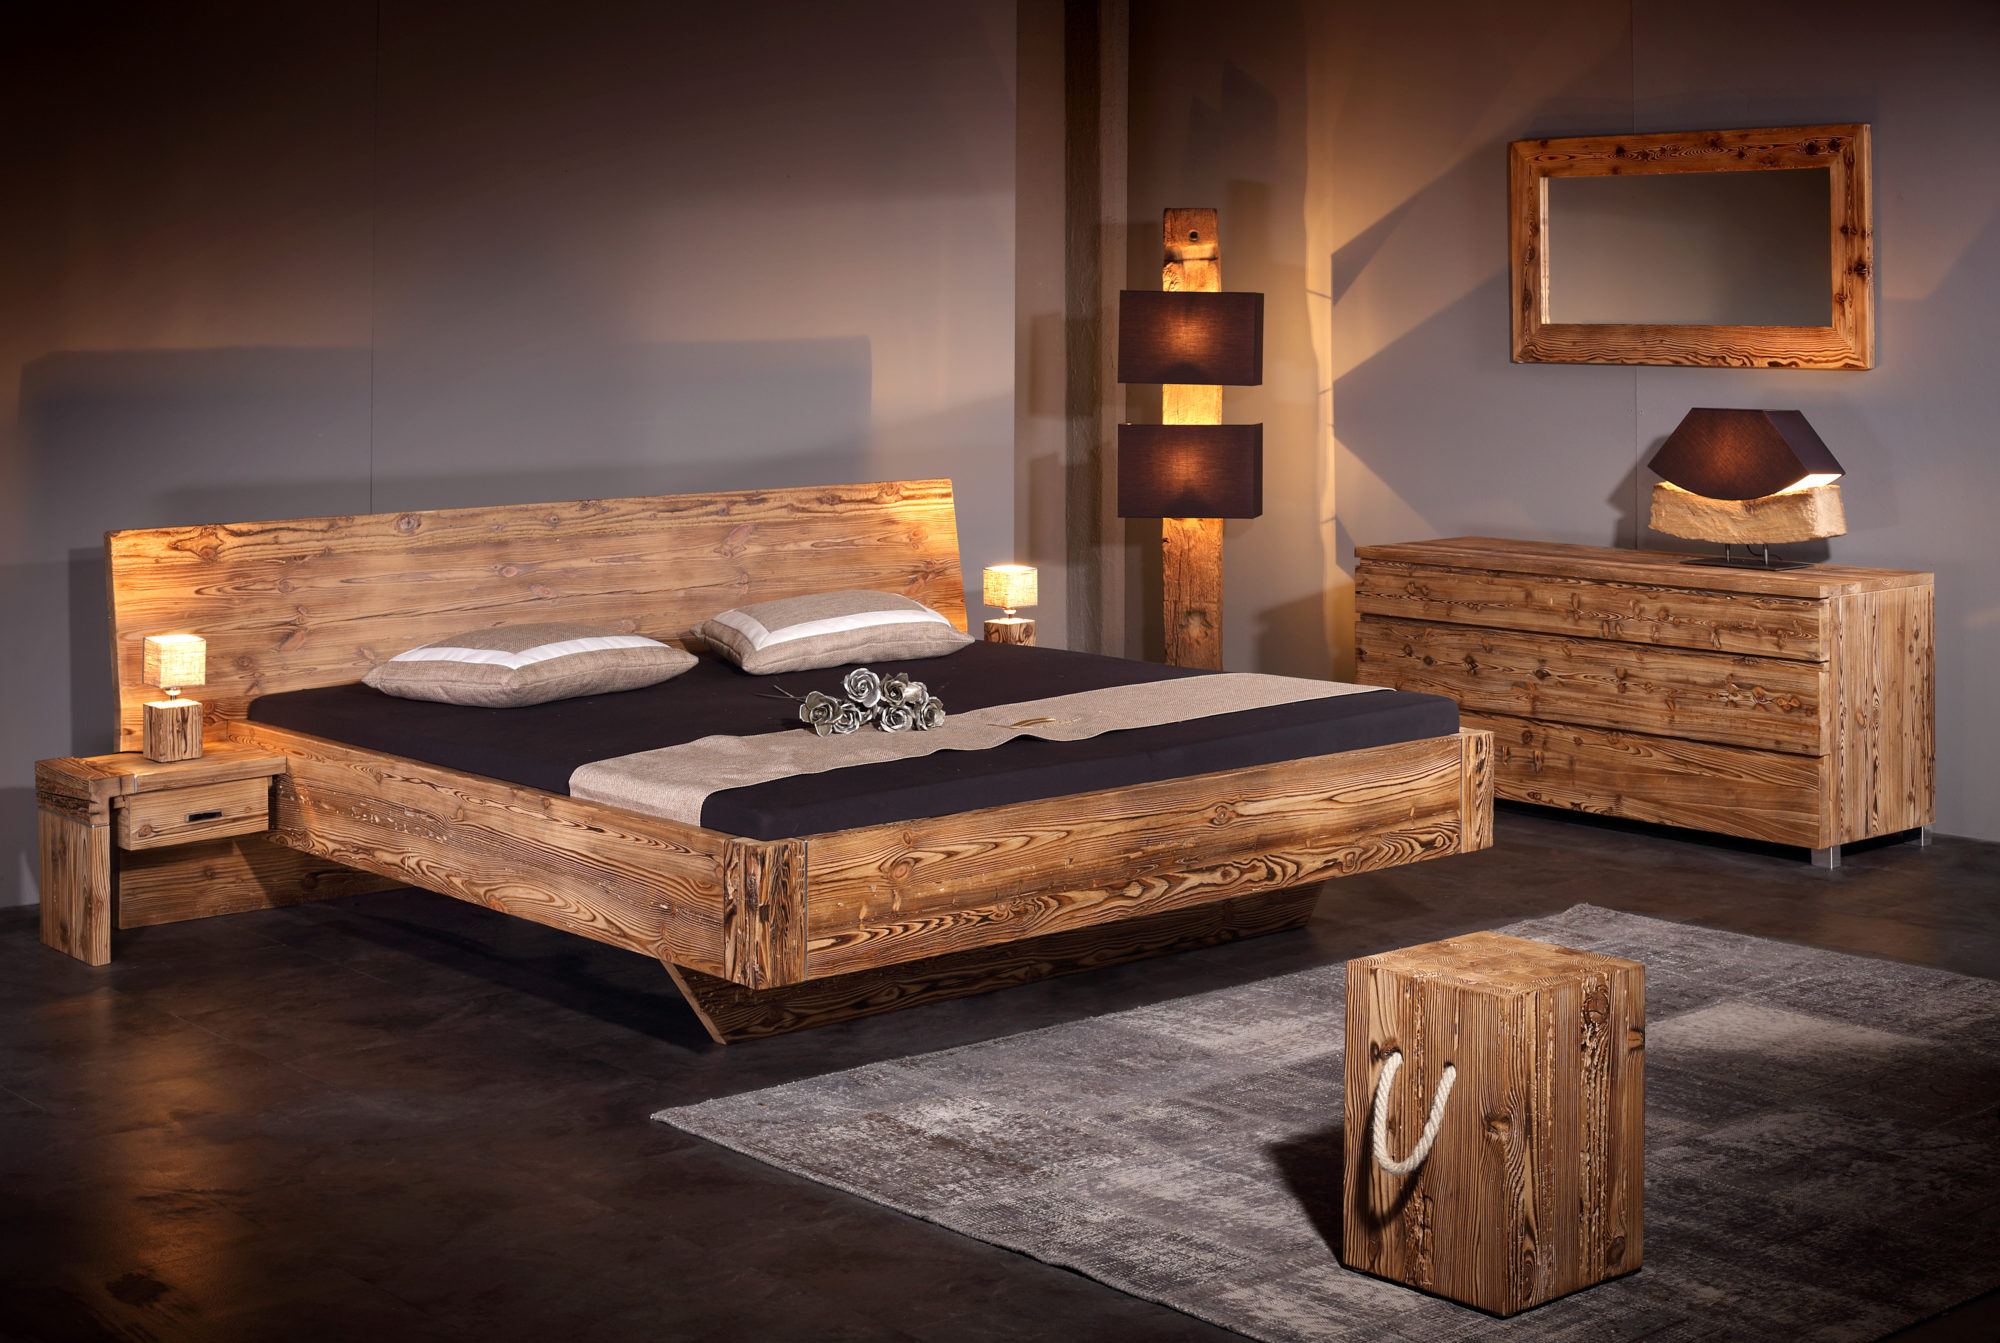 Bett Aus Altholz Betten Altholz Wohn Design